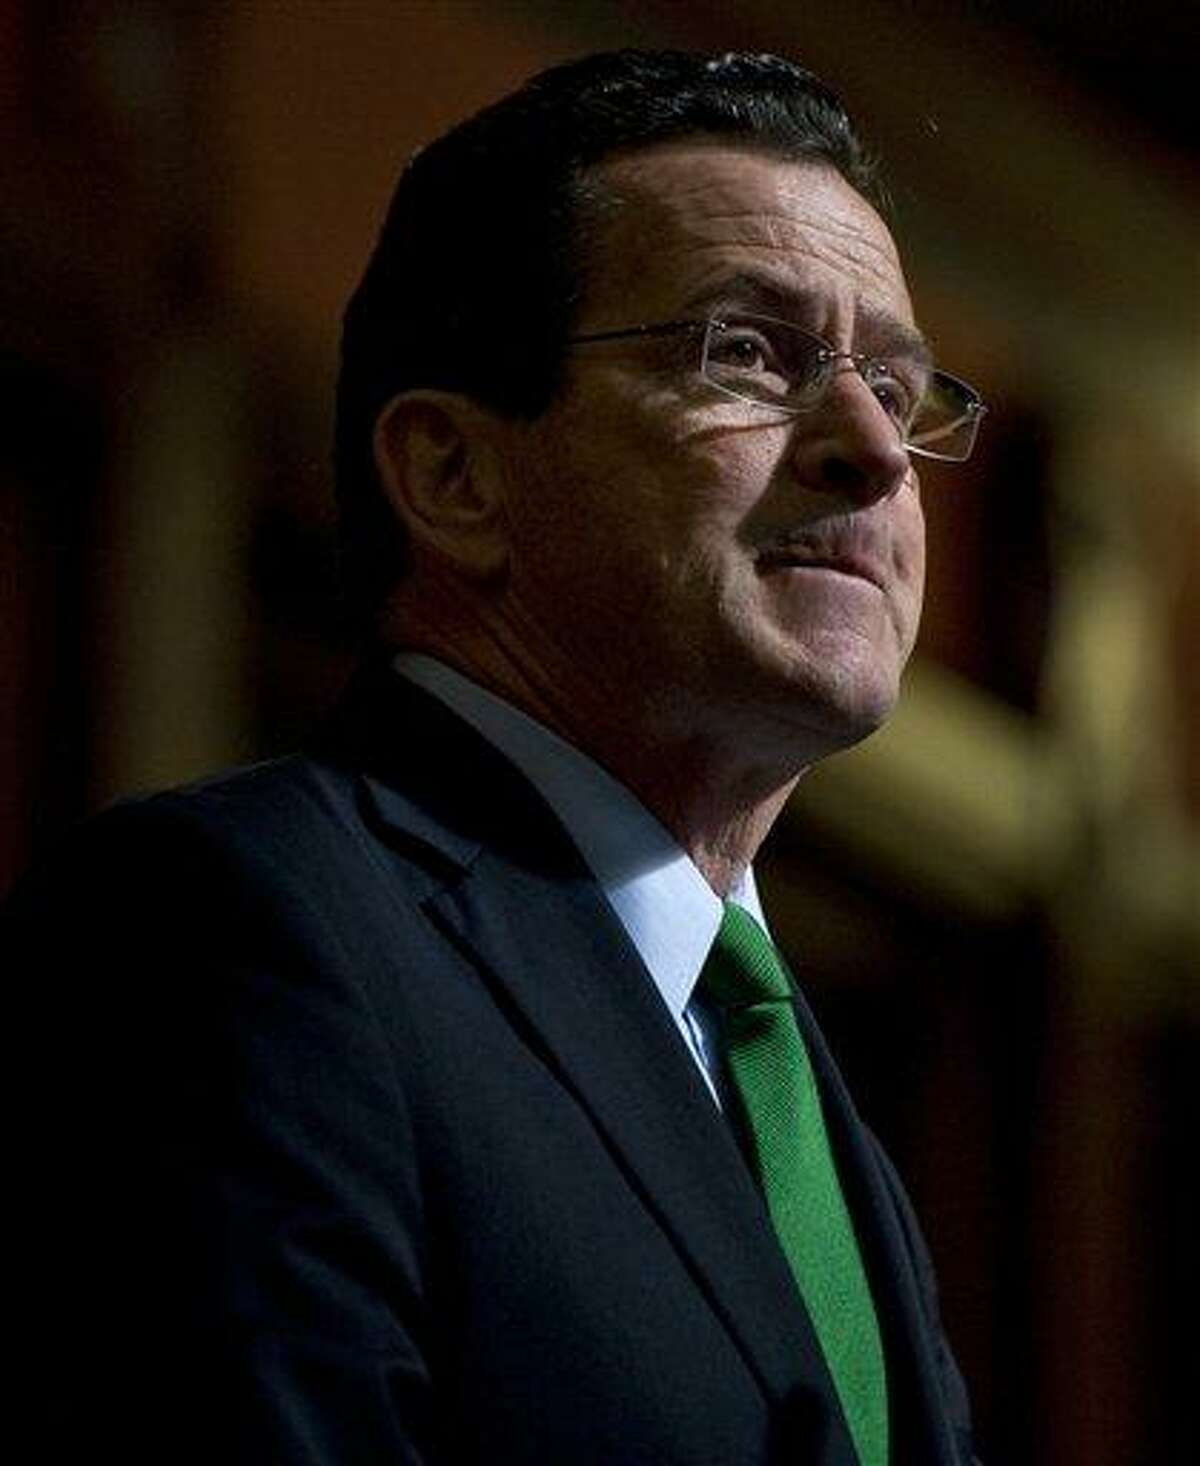 Gov. Dannel P. Malloy speaks Feb. 8 at the State Capitol in Hartford. The Connecticut legislature has voted to repeal the state's death penalty, and the Democratic governor is expected to sign it into law. That would make the state the 17th to end capital punishment. Associated Press